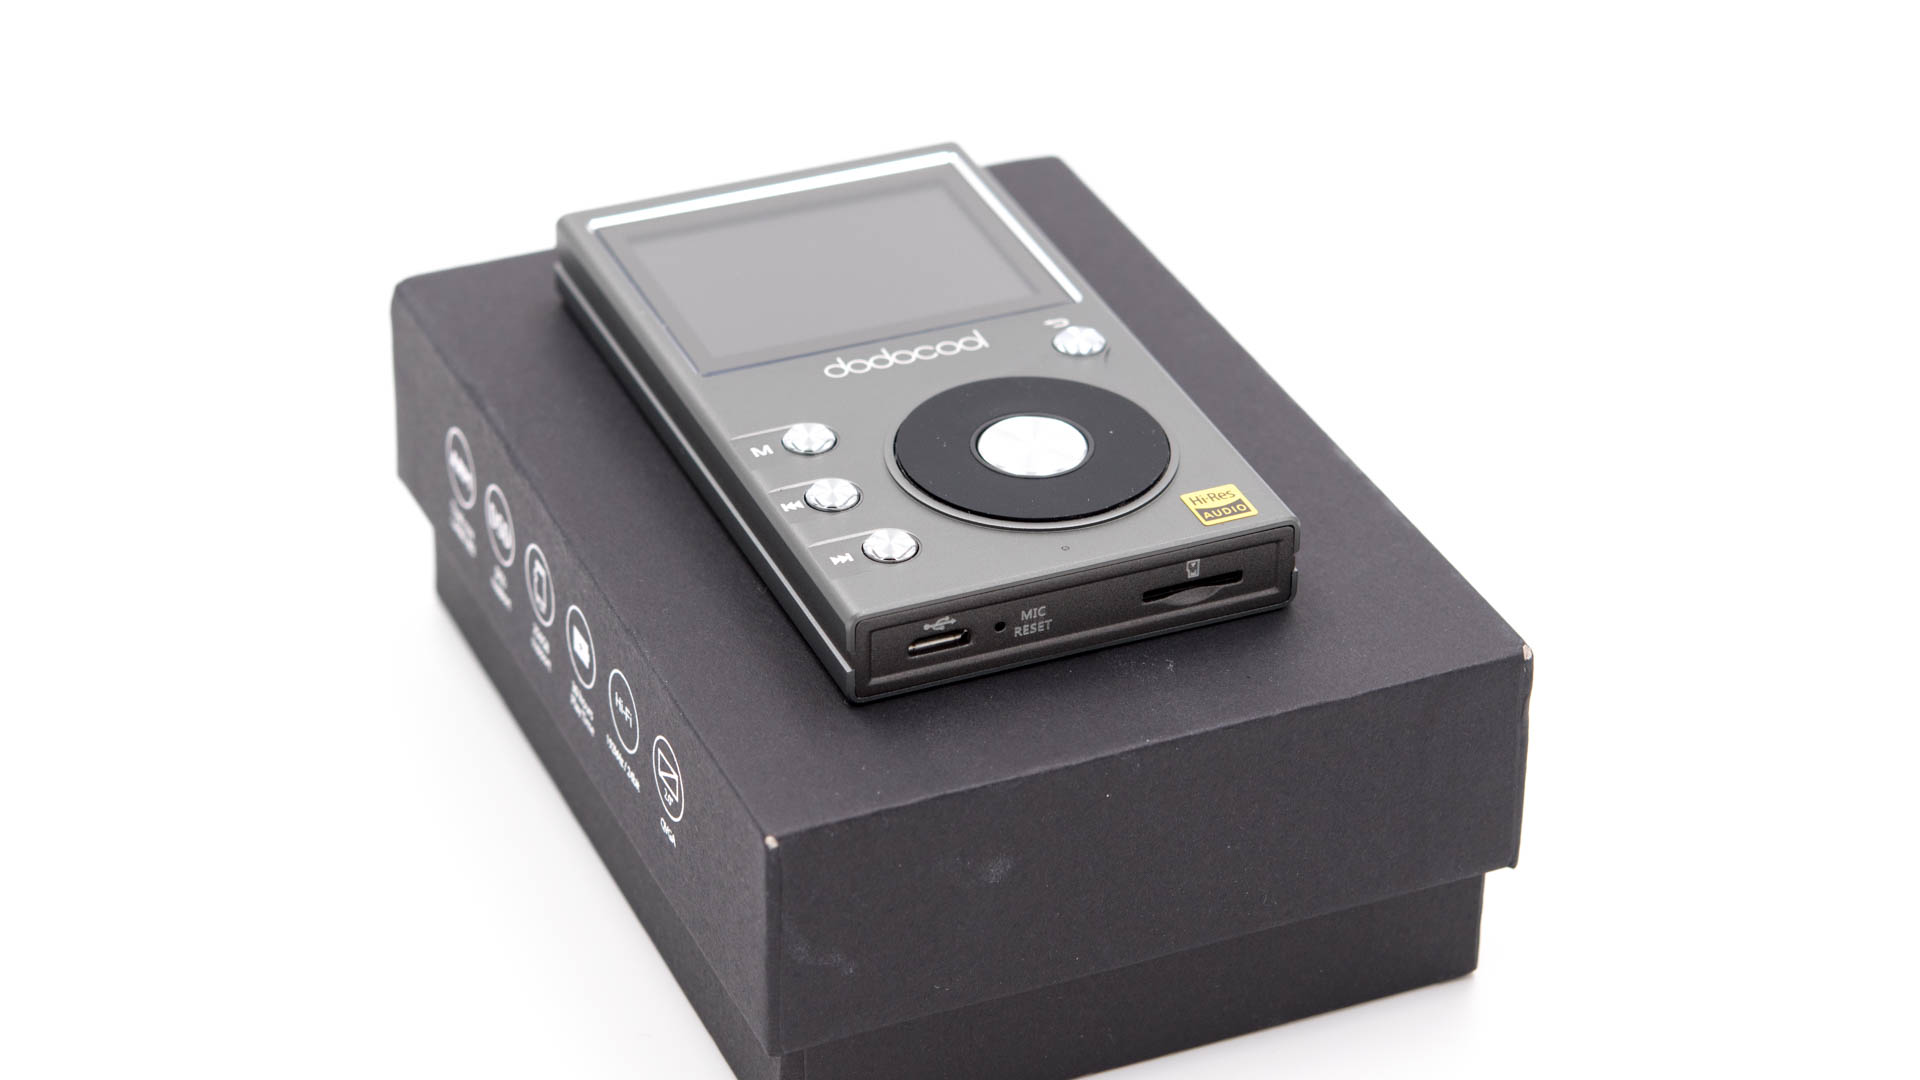 der dodocool da106 hi res mp3 player im test techtest. Black Bedroom Furniture Sets. Home Design Ideas